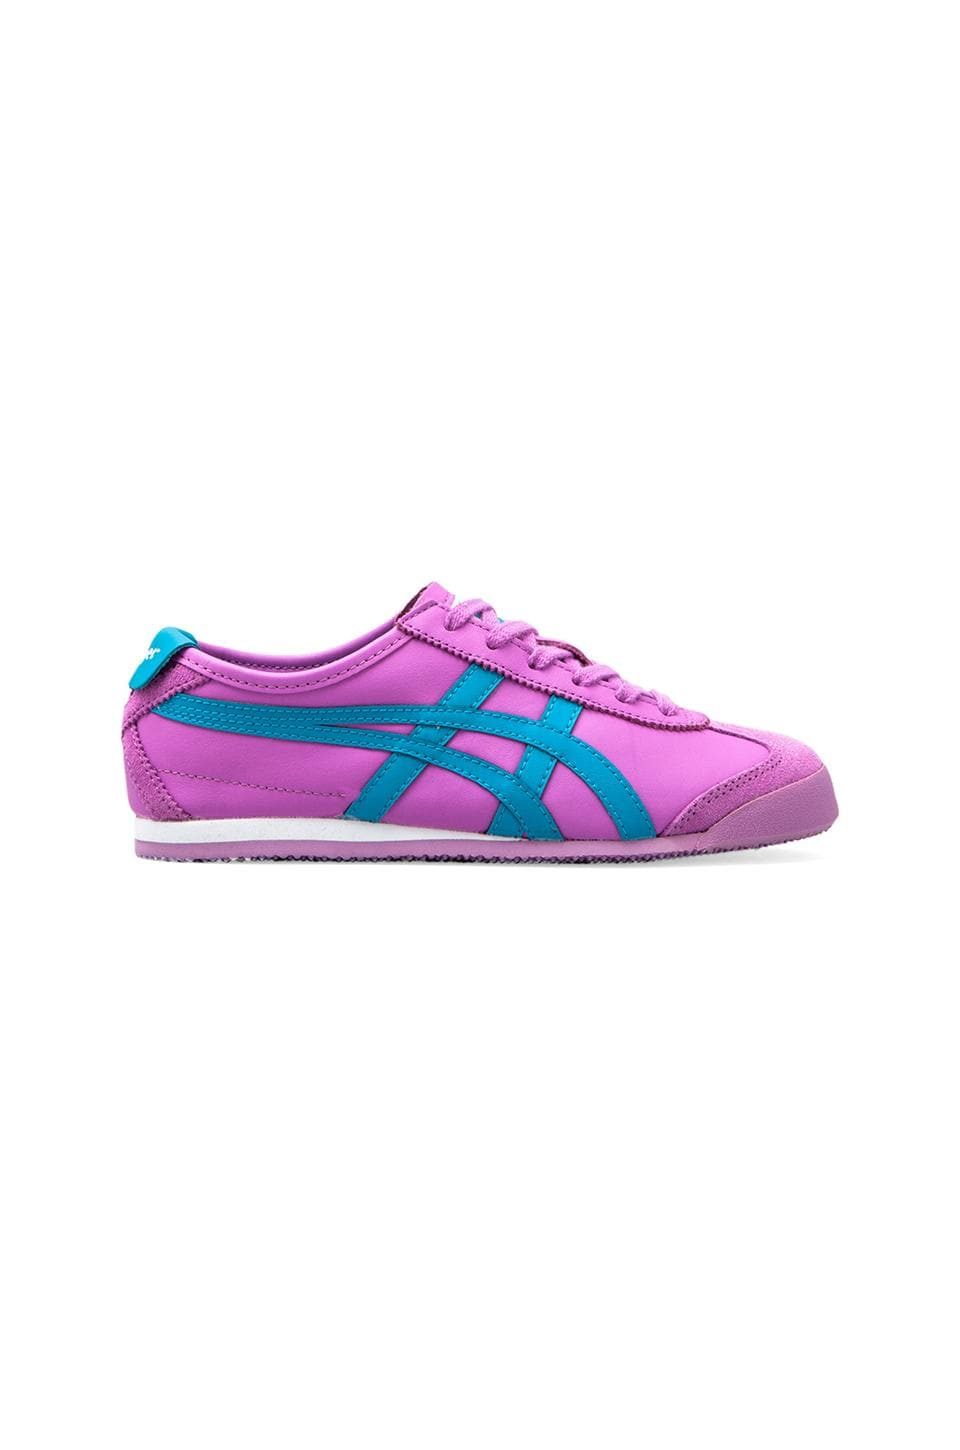 Onitsuka Tiger Mexico 66 in Purple/Blue